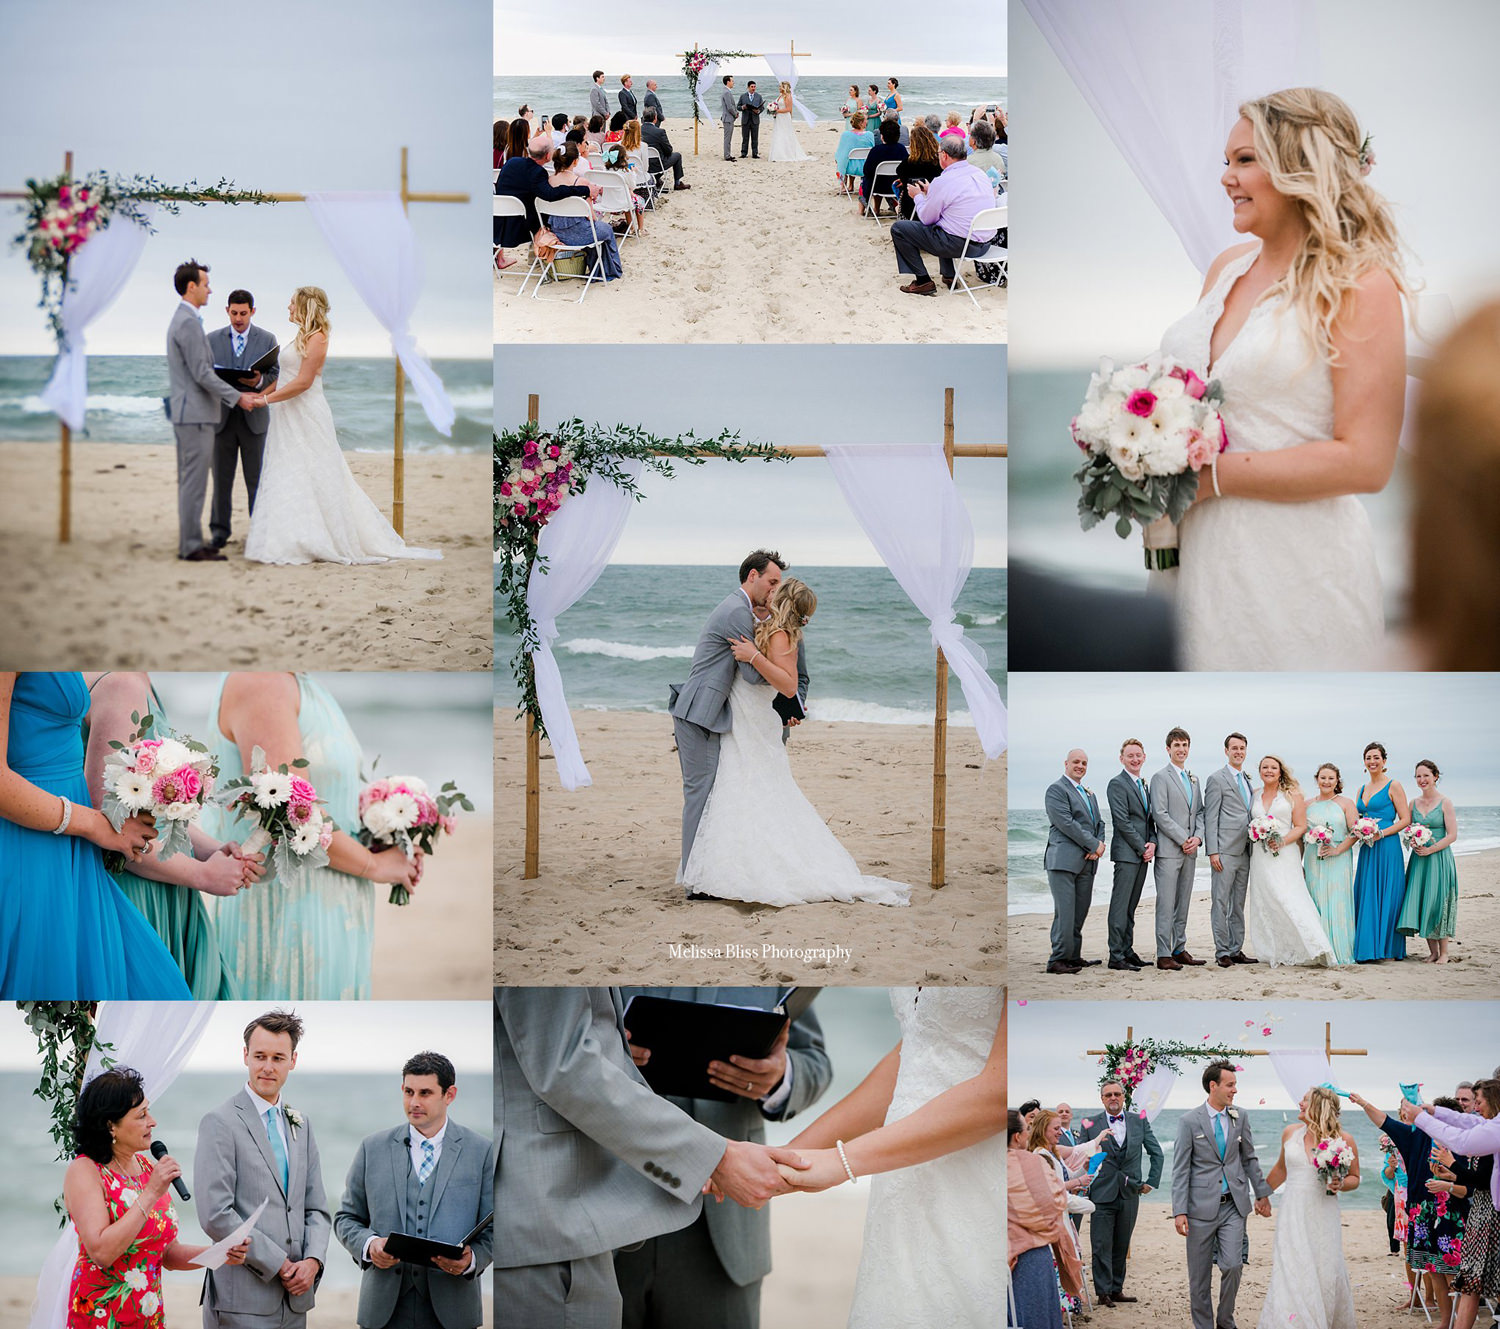 sandbridge-beach-wedding-blue-horizon-melissa-bliss-photography-sandbridge-wedding-photographer.jpg